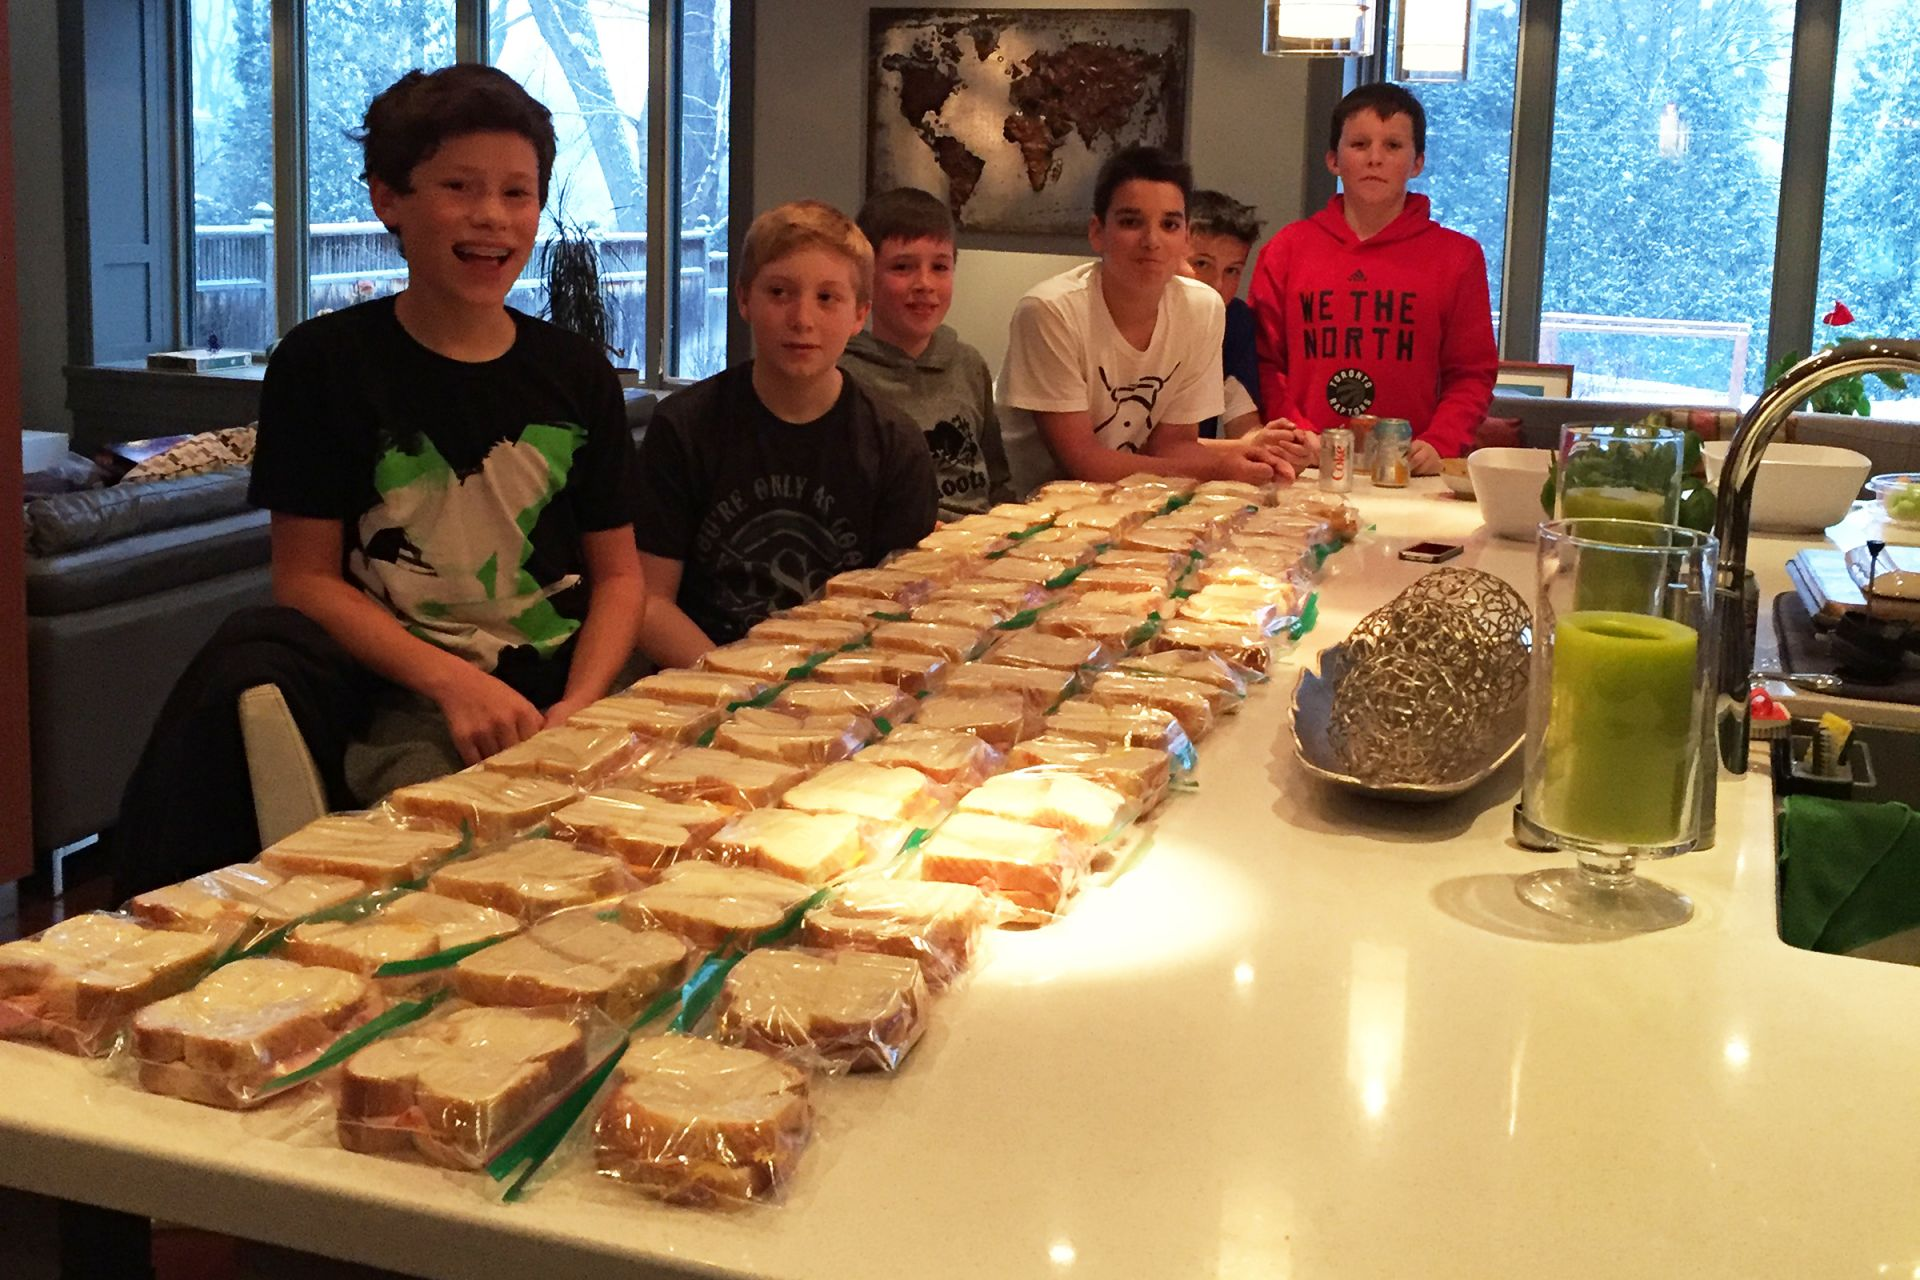 These grade 7 leaders made over 80 sandwiches for Youth Without Shelter.